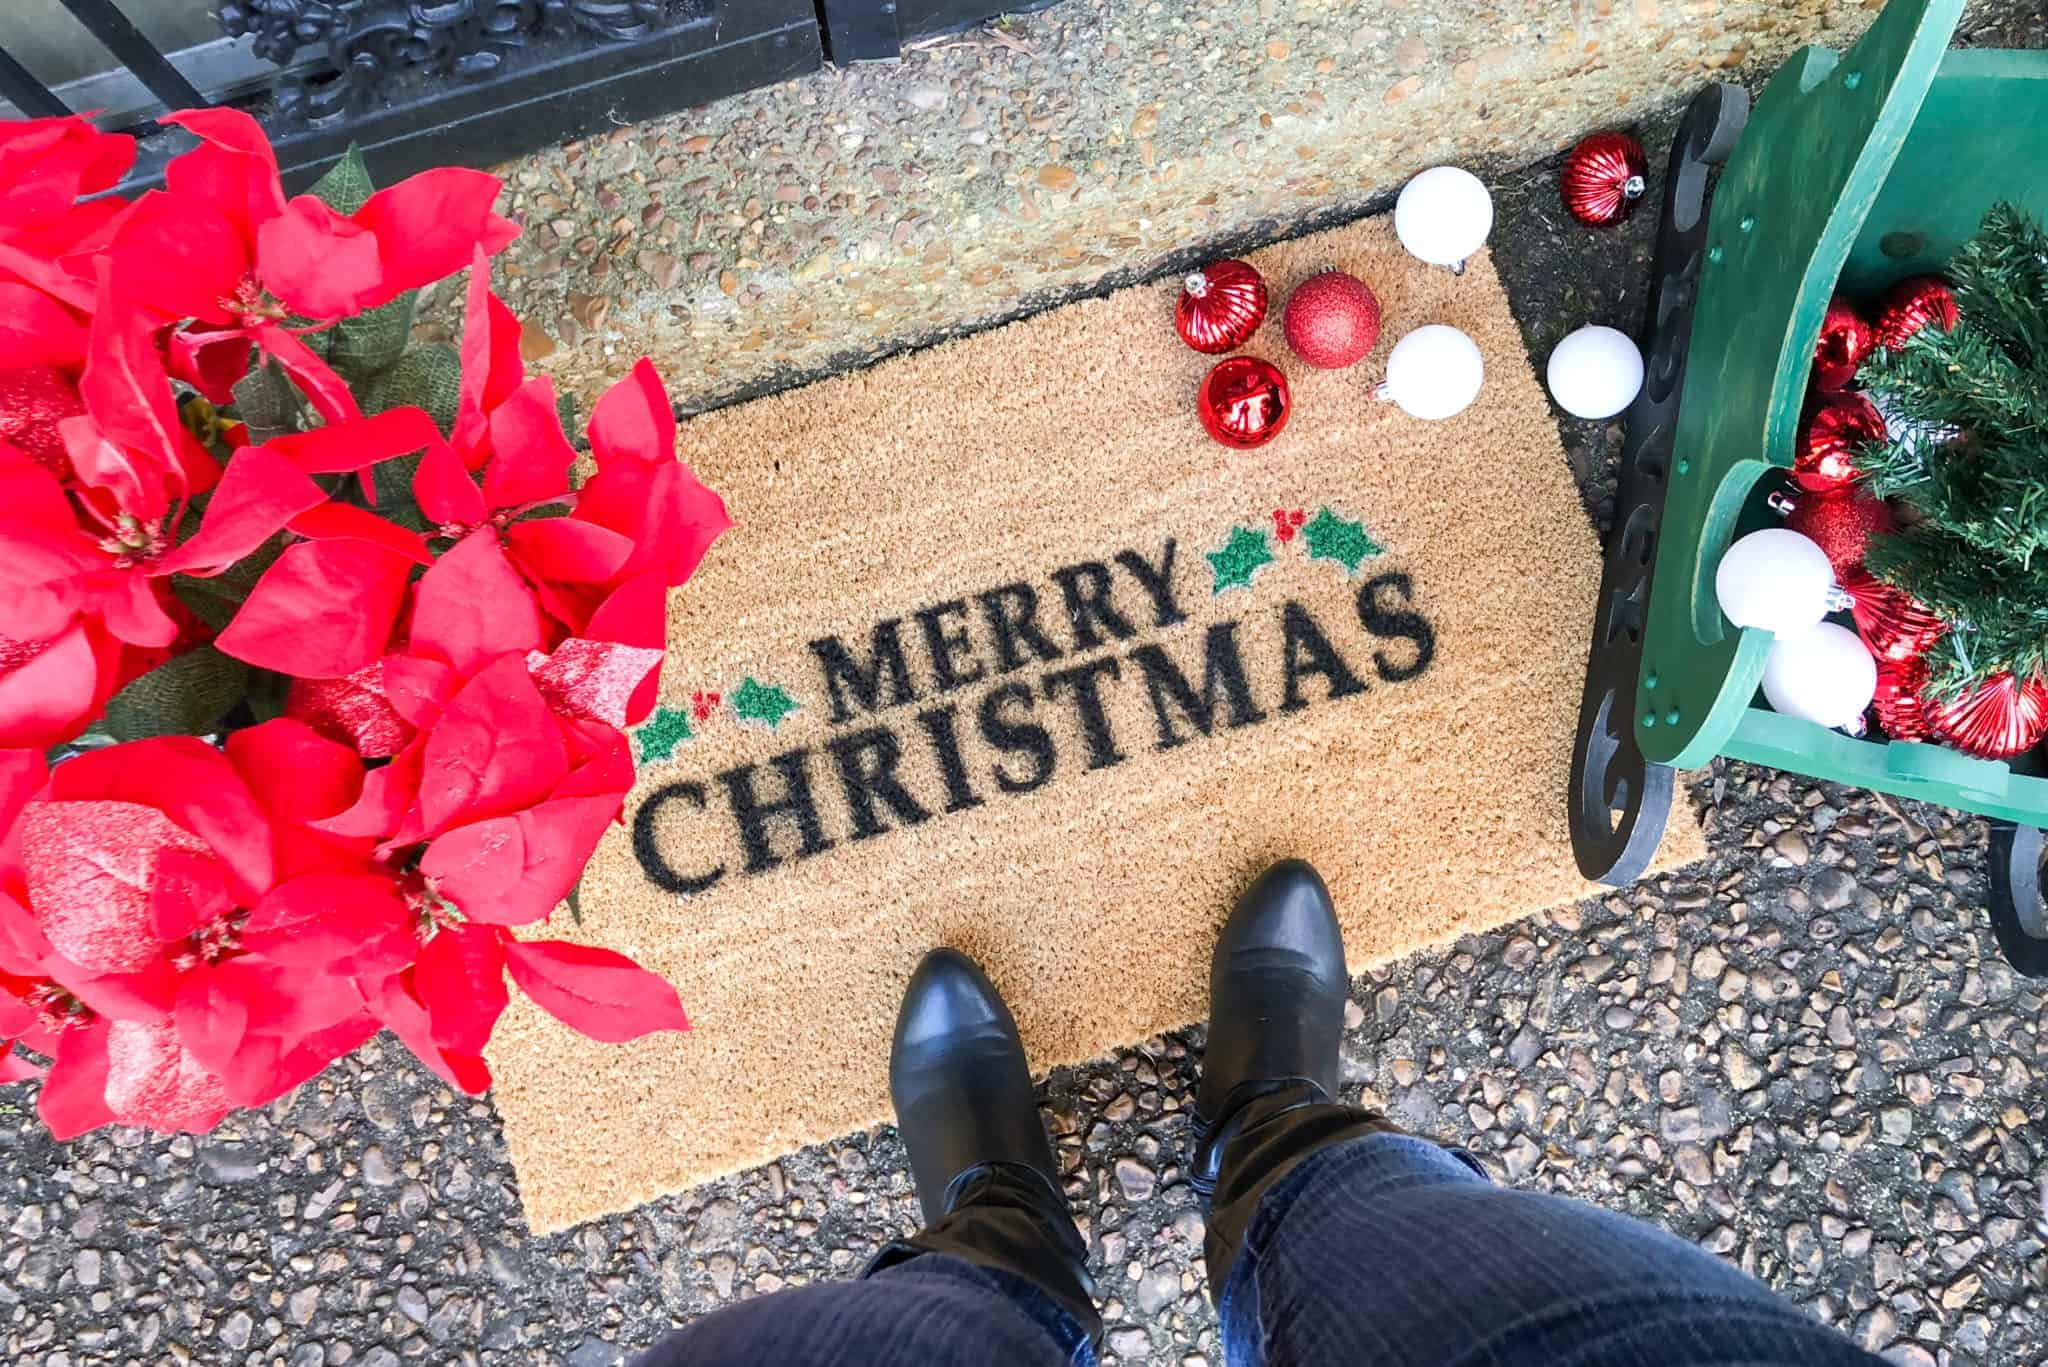 What better way to welcome guests into your home this Christmas than with a festive doormat? Check out this tutorial for how to make your own super simple DIY Christmas doormat.